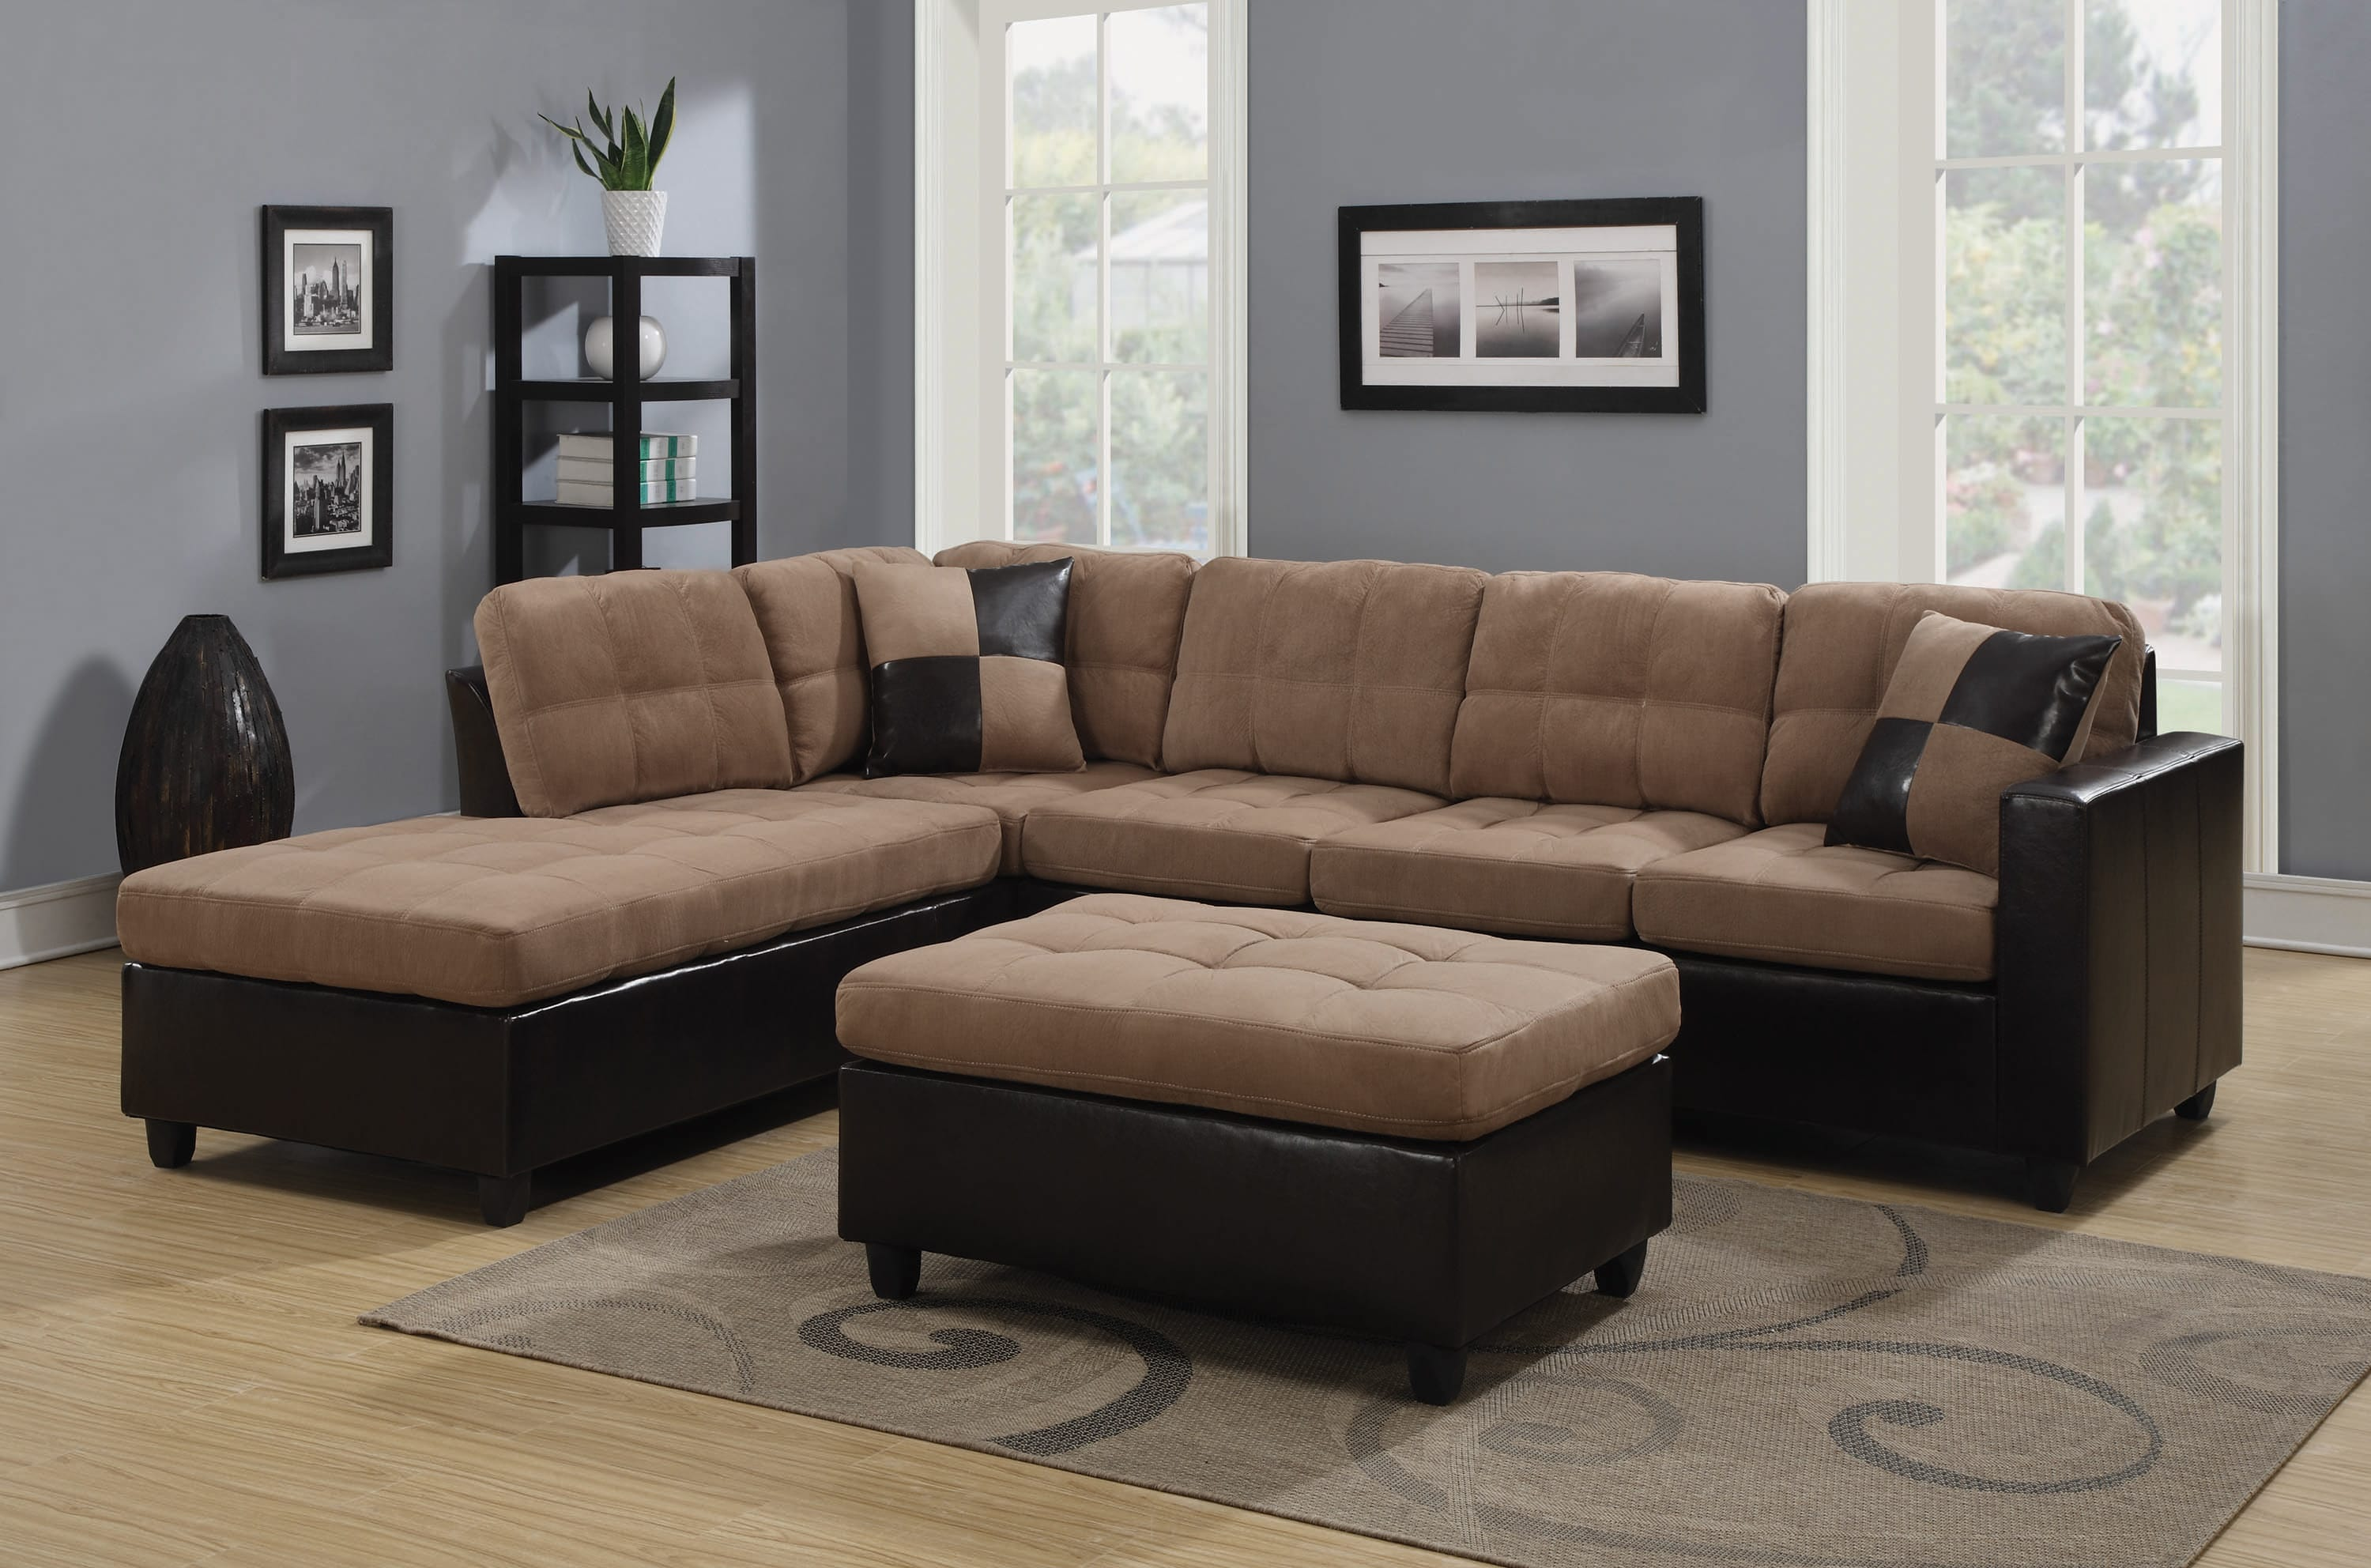 mallory upholstered tan dark brown sectional sofa by coaster fine furniture